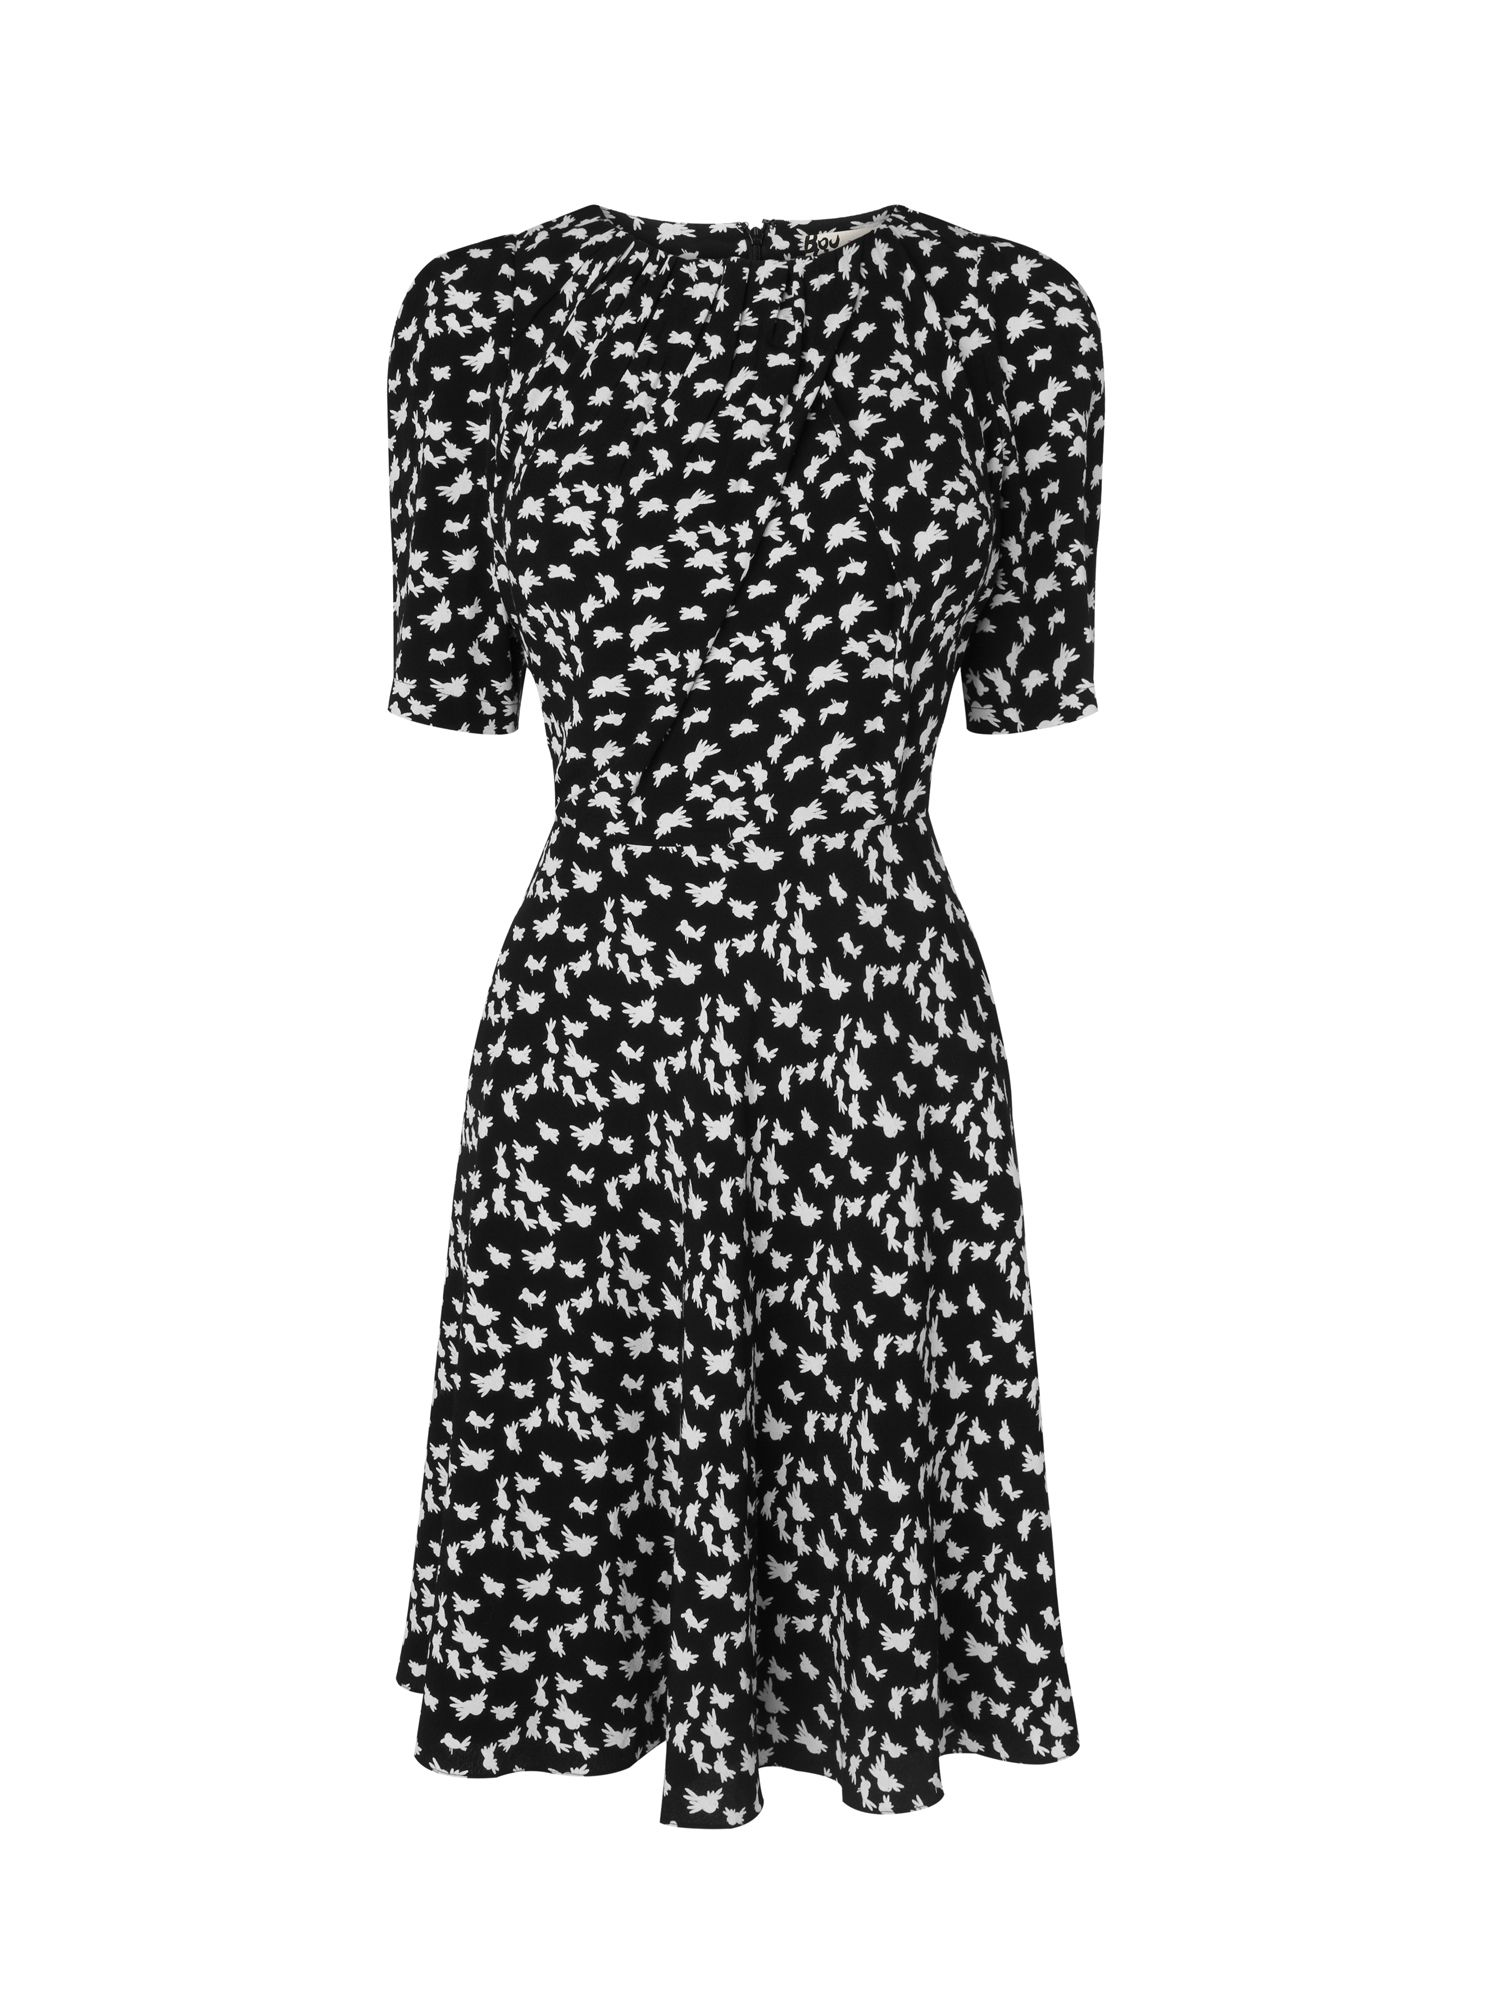 Fold neck bird print dress